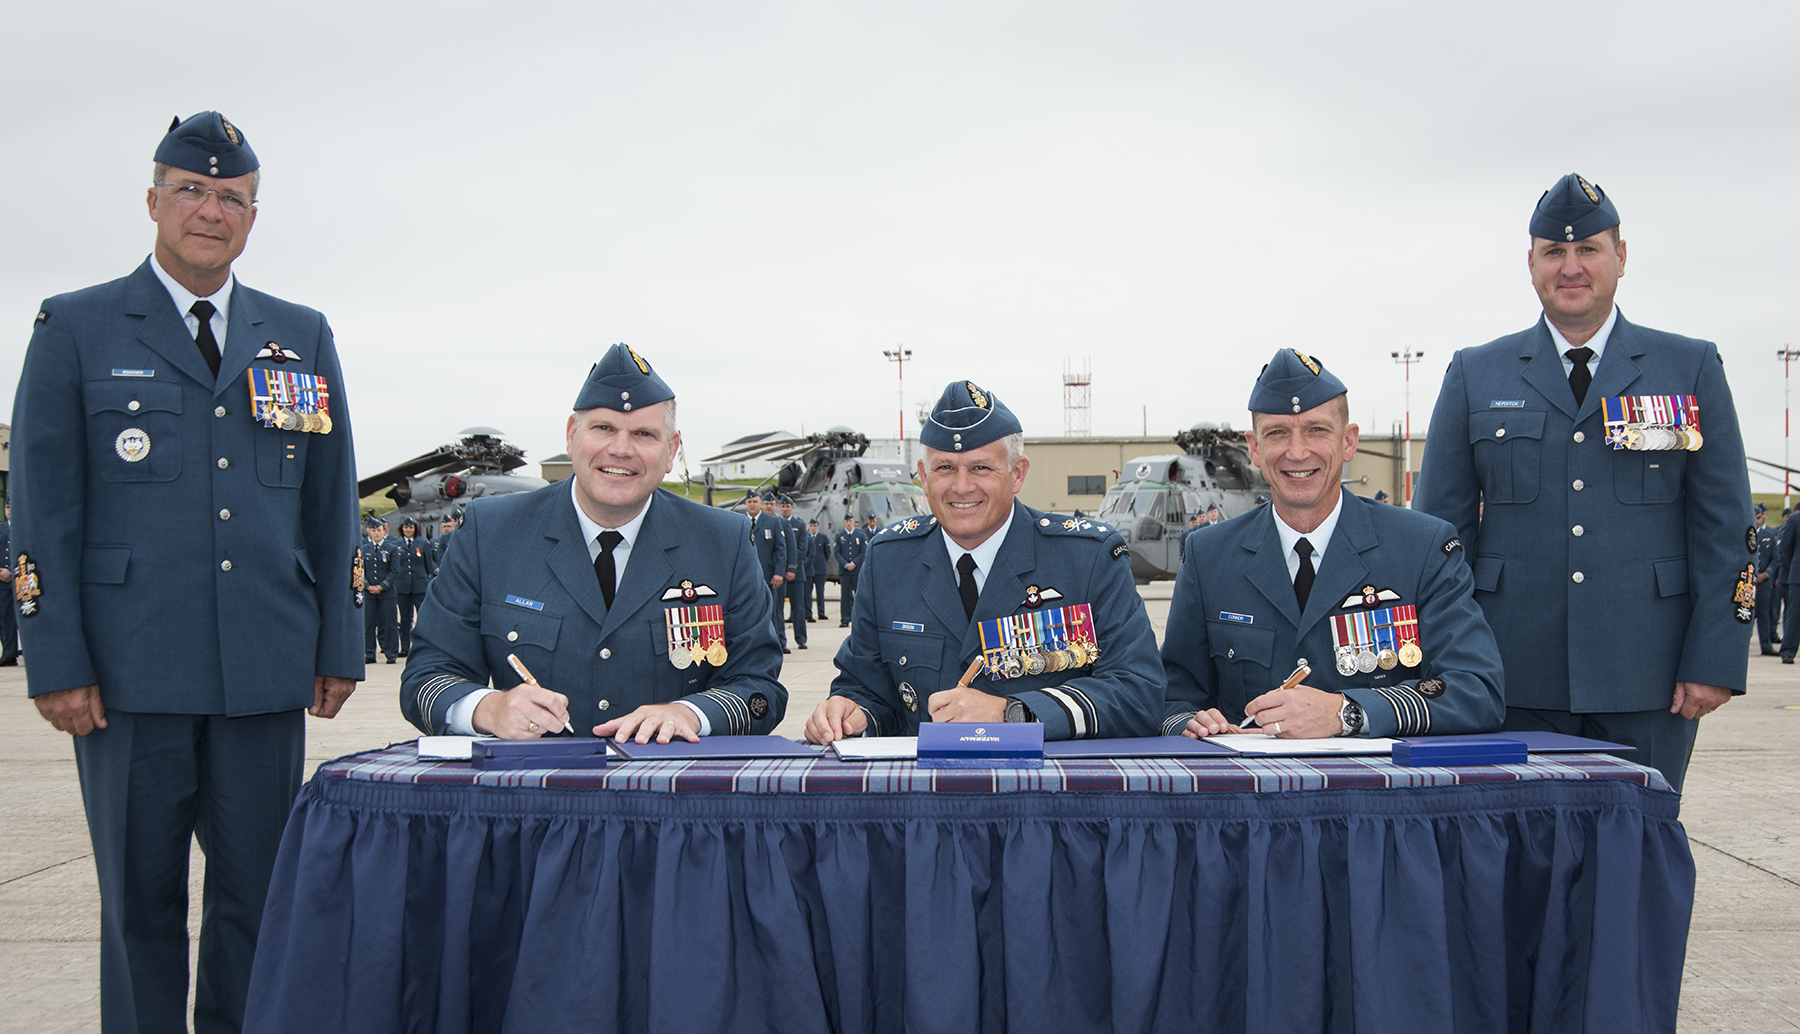 Sitting outdoors at a table covered with a tartan cloth, three men in blue uniforms hold pens and prepare to sign a document each. A man in a blue uniform stands at each ed of the table.